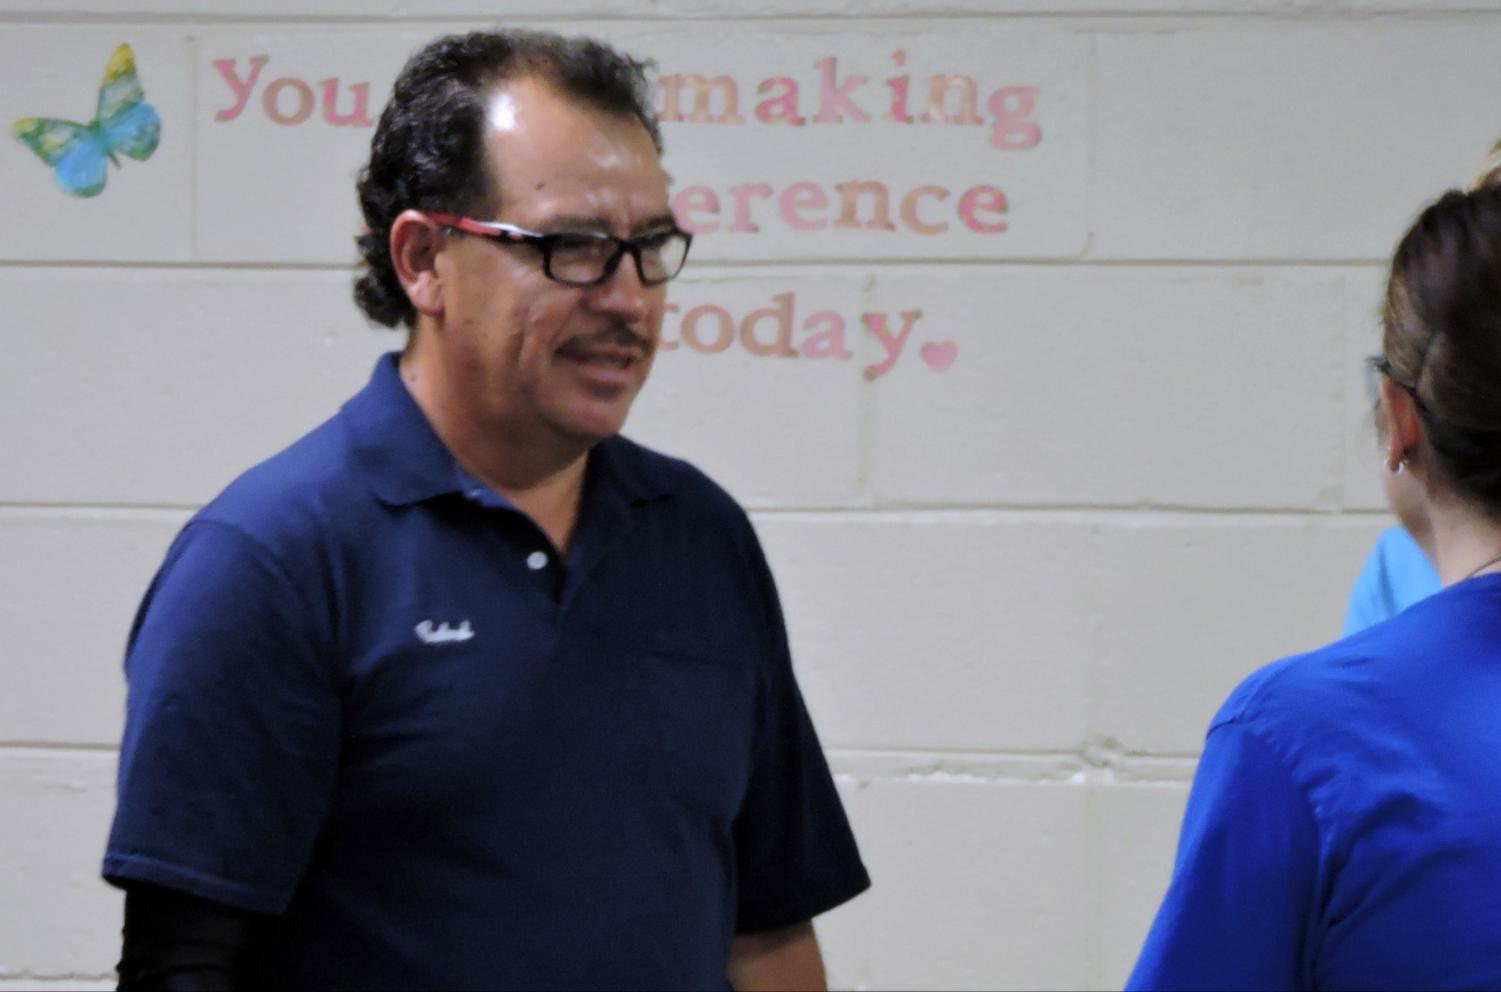 Custodian Alfonso Rivera will be recognized with the Illinois State Board of Education's highest honor on Oct. 19 in Normal, Illinois.